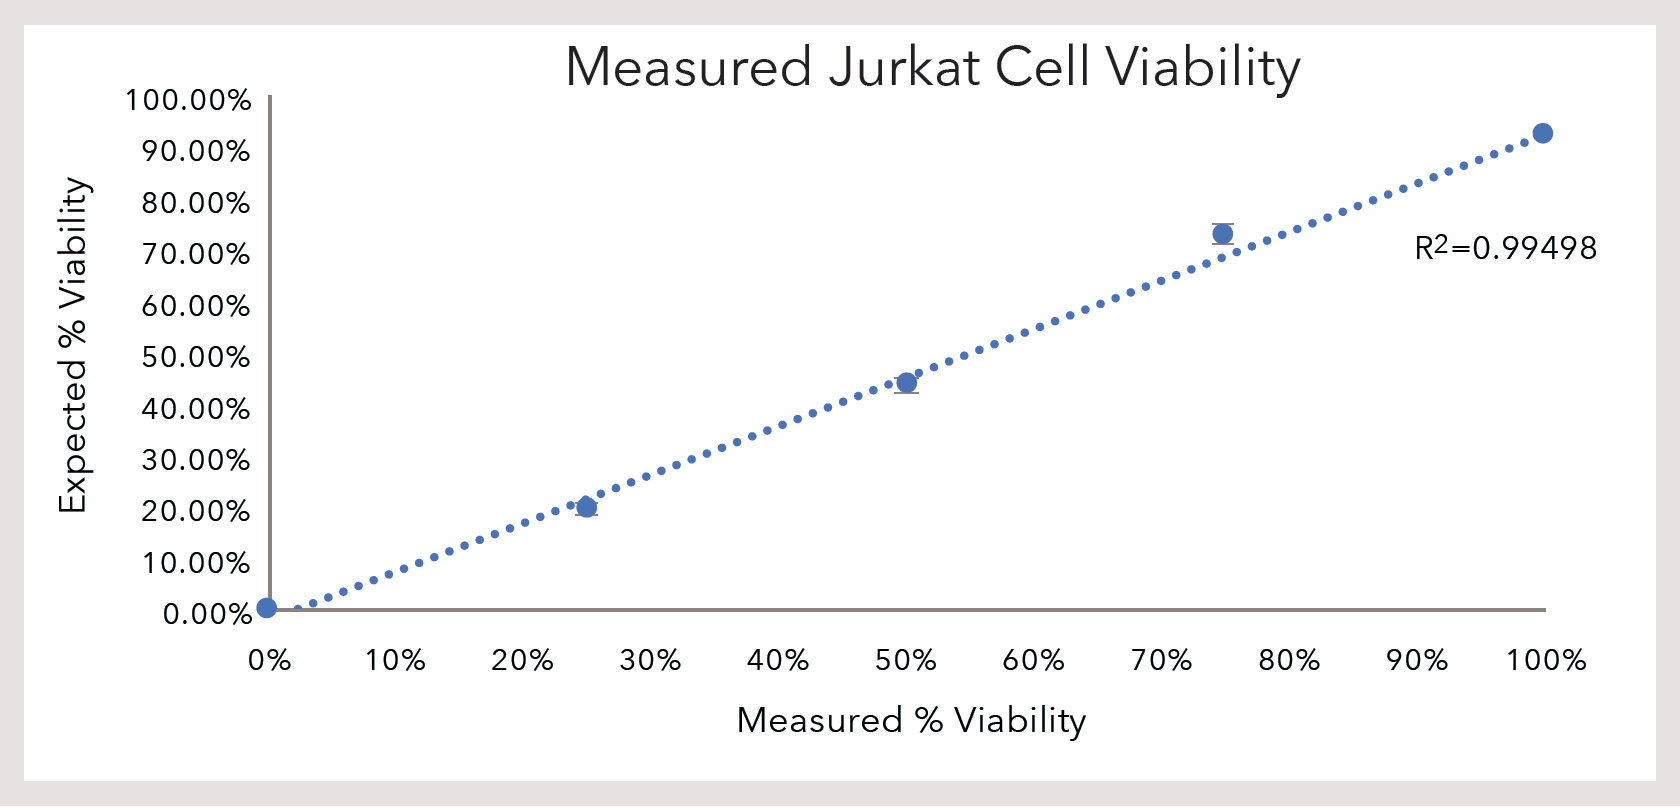 Measured Jurkat Cell Viability